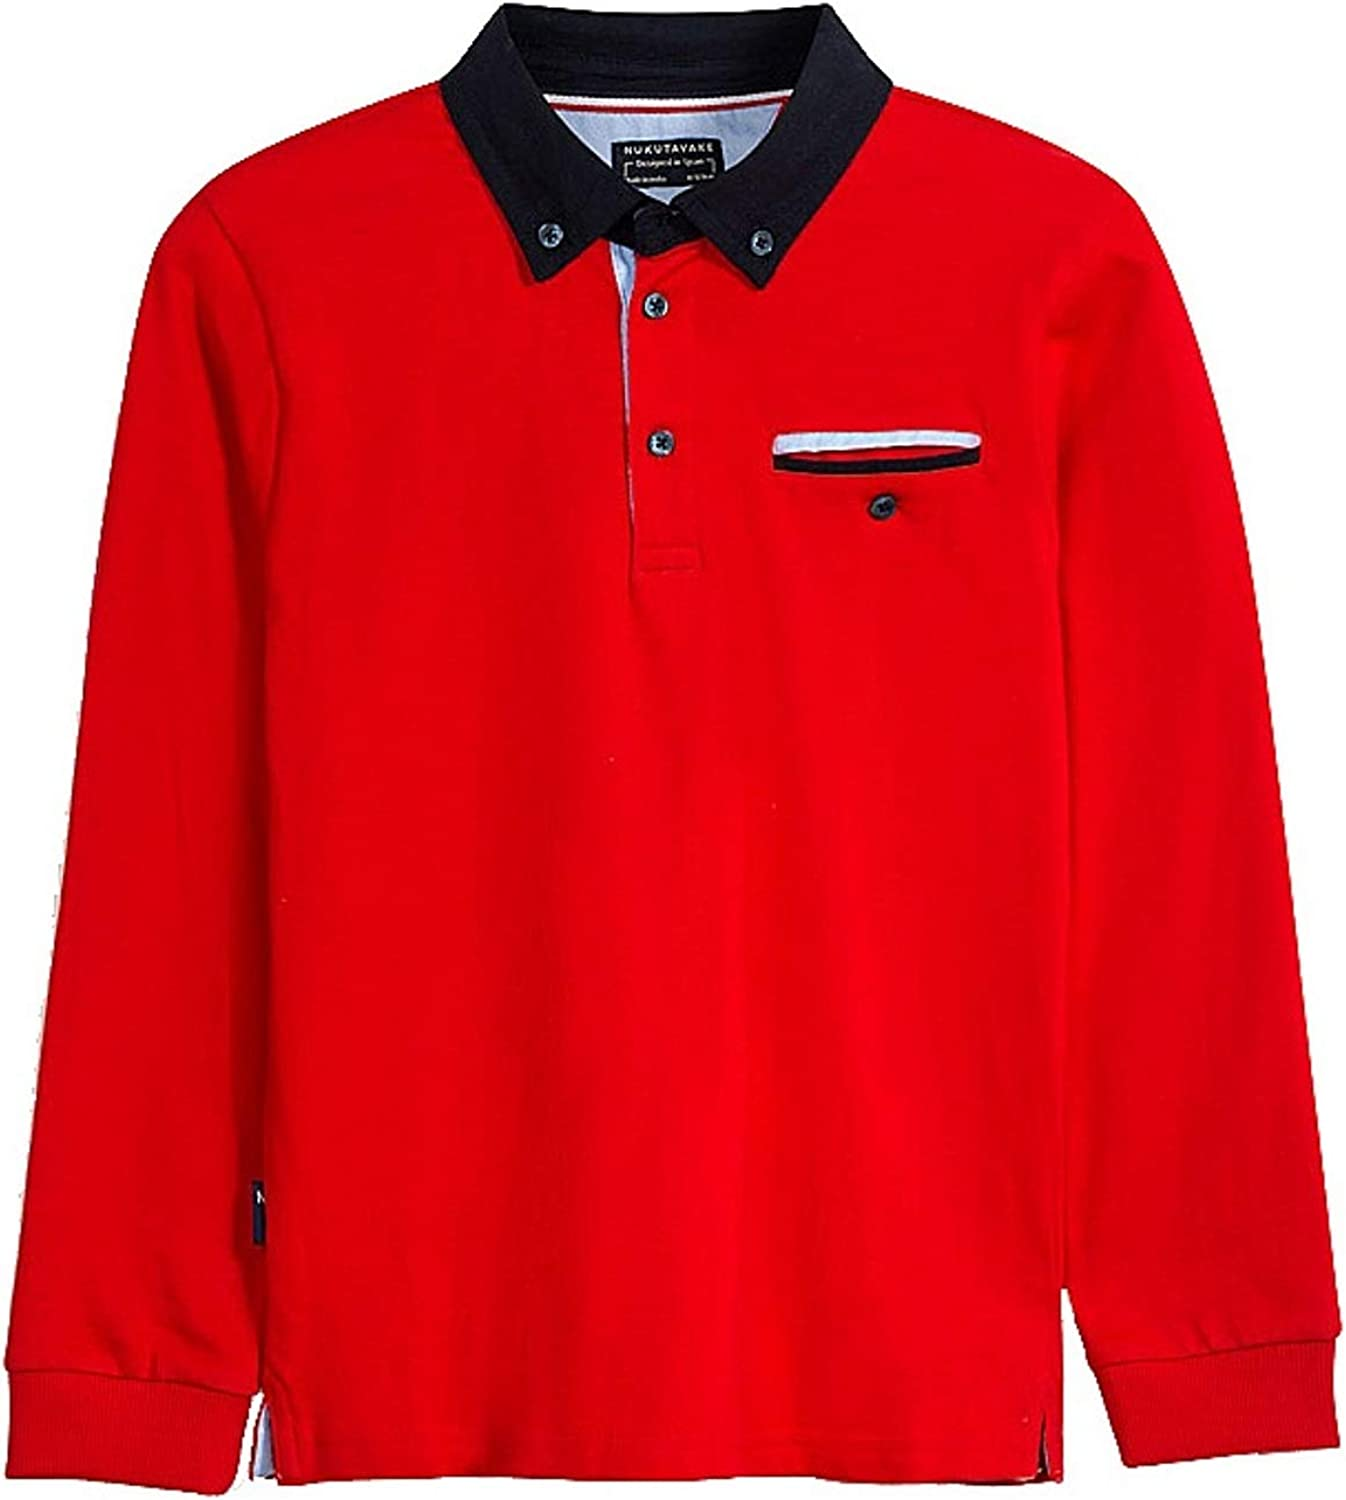 Mayoral - L/s Polo for Boys - 7124, Red